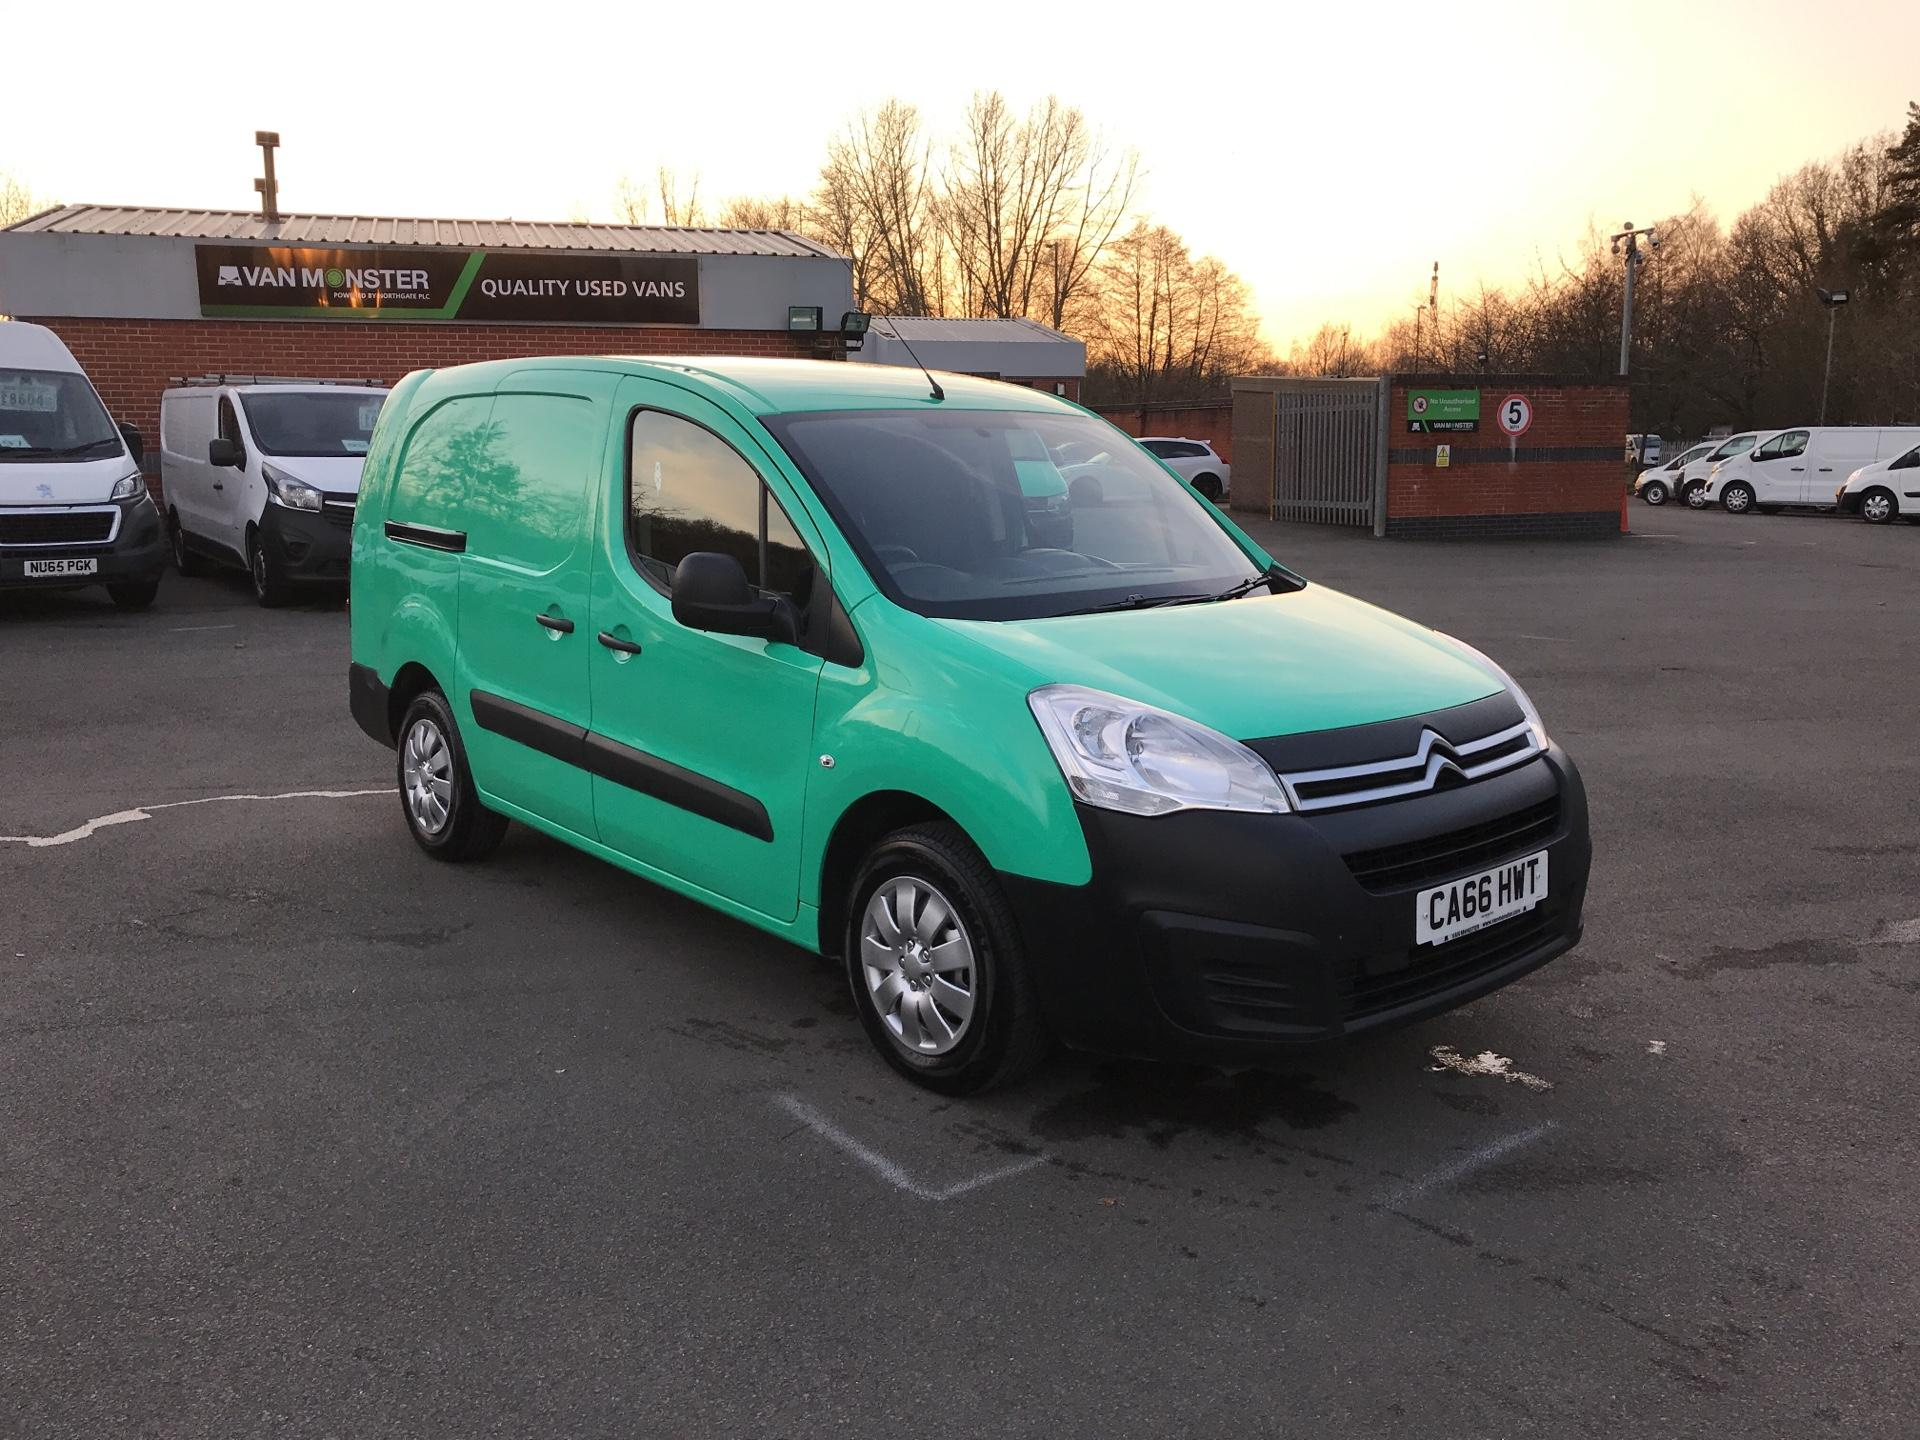 2017 Citroen Berlingo L2 DIESEL 1.6 BLUEHDI 750 LX 100PS EURO 6  (CA66HWT)